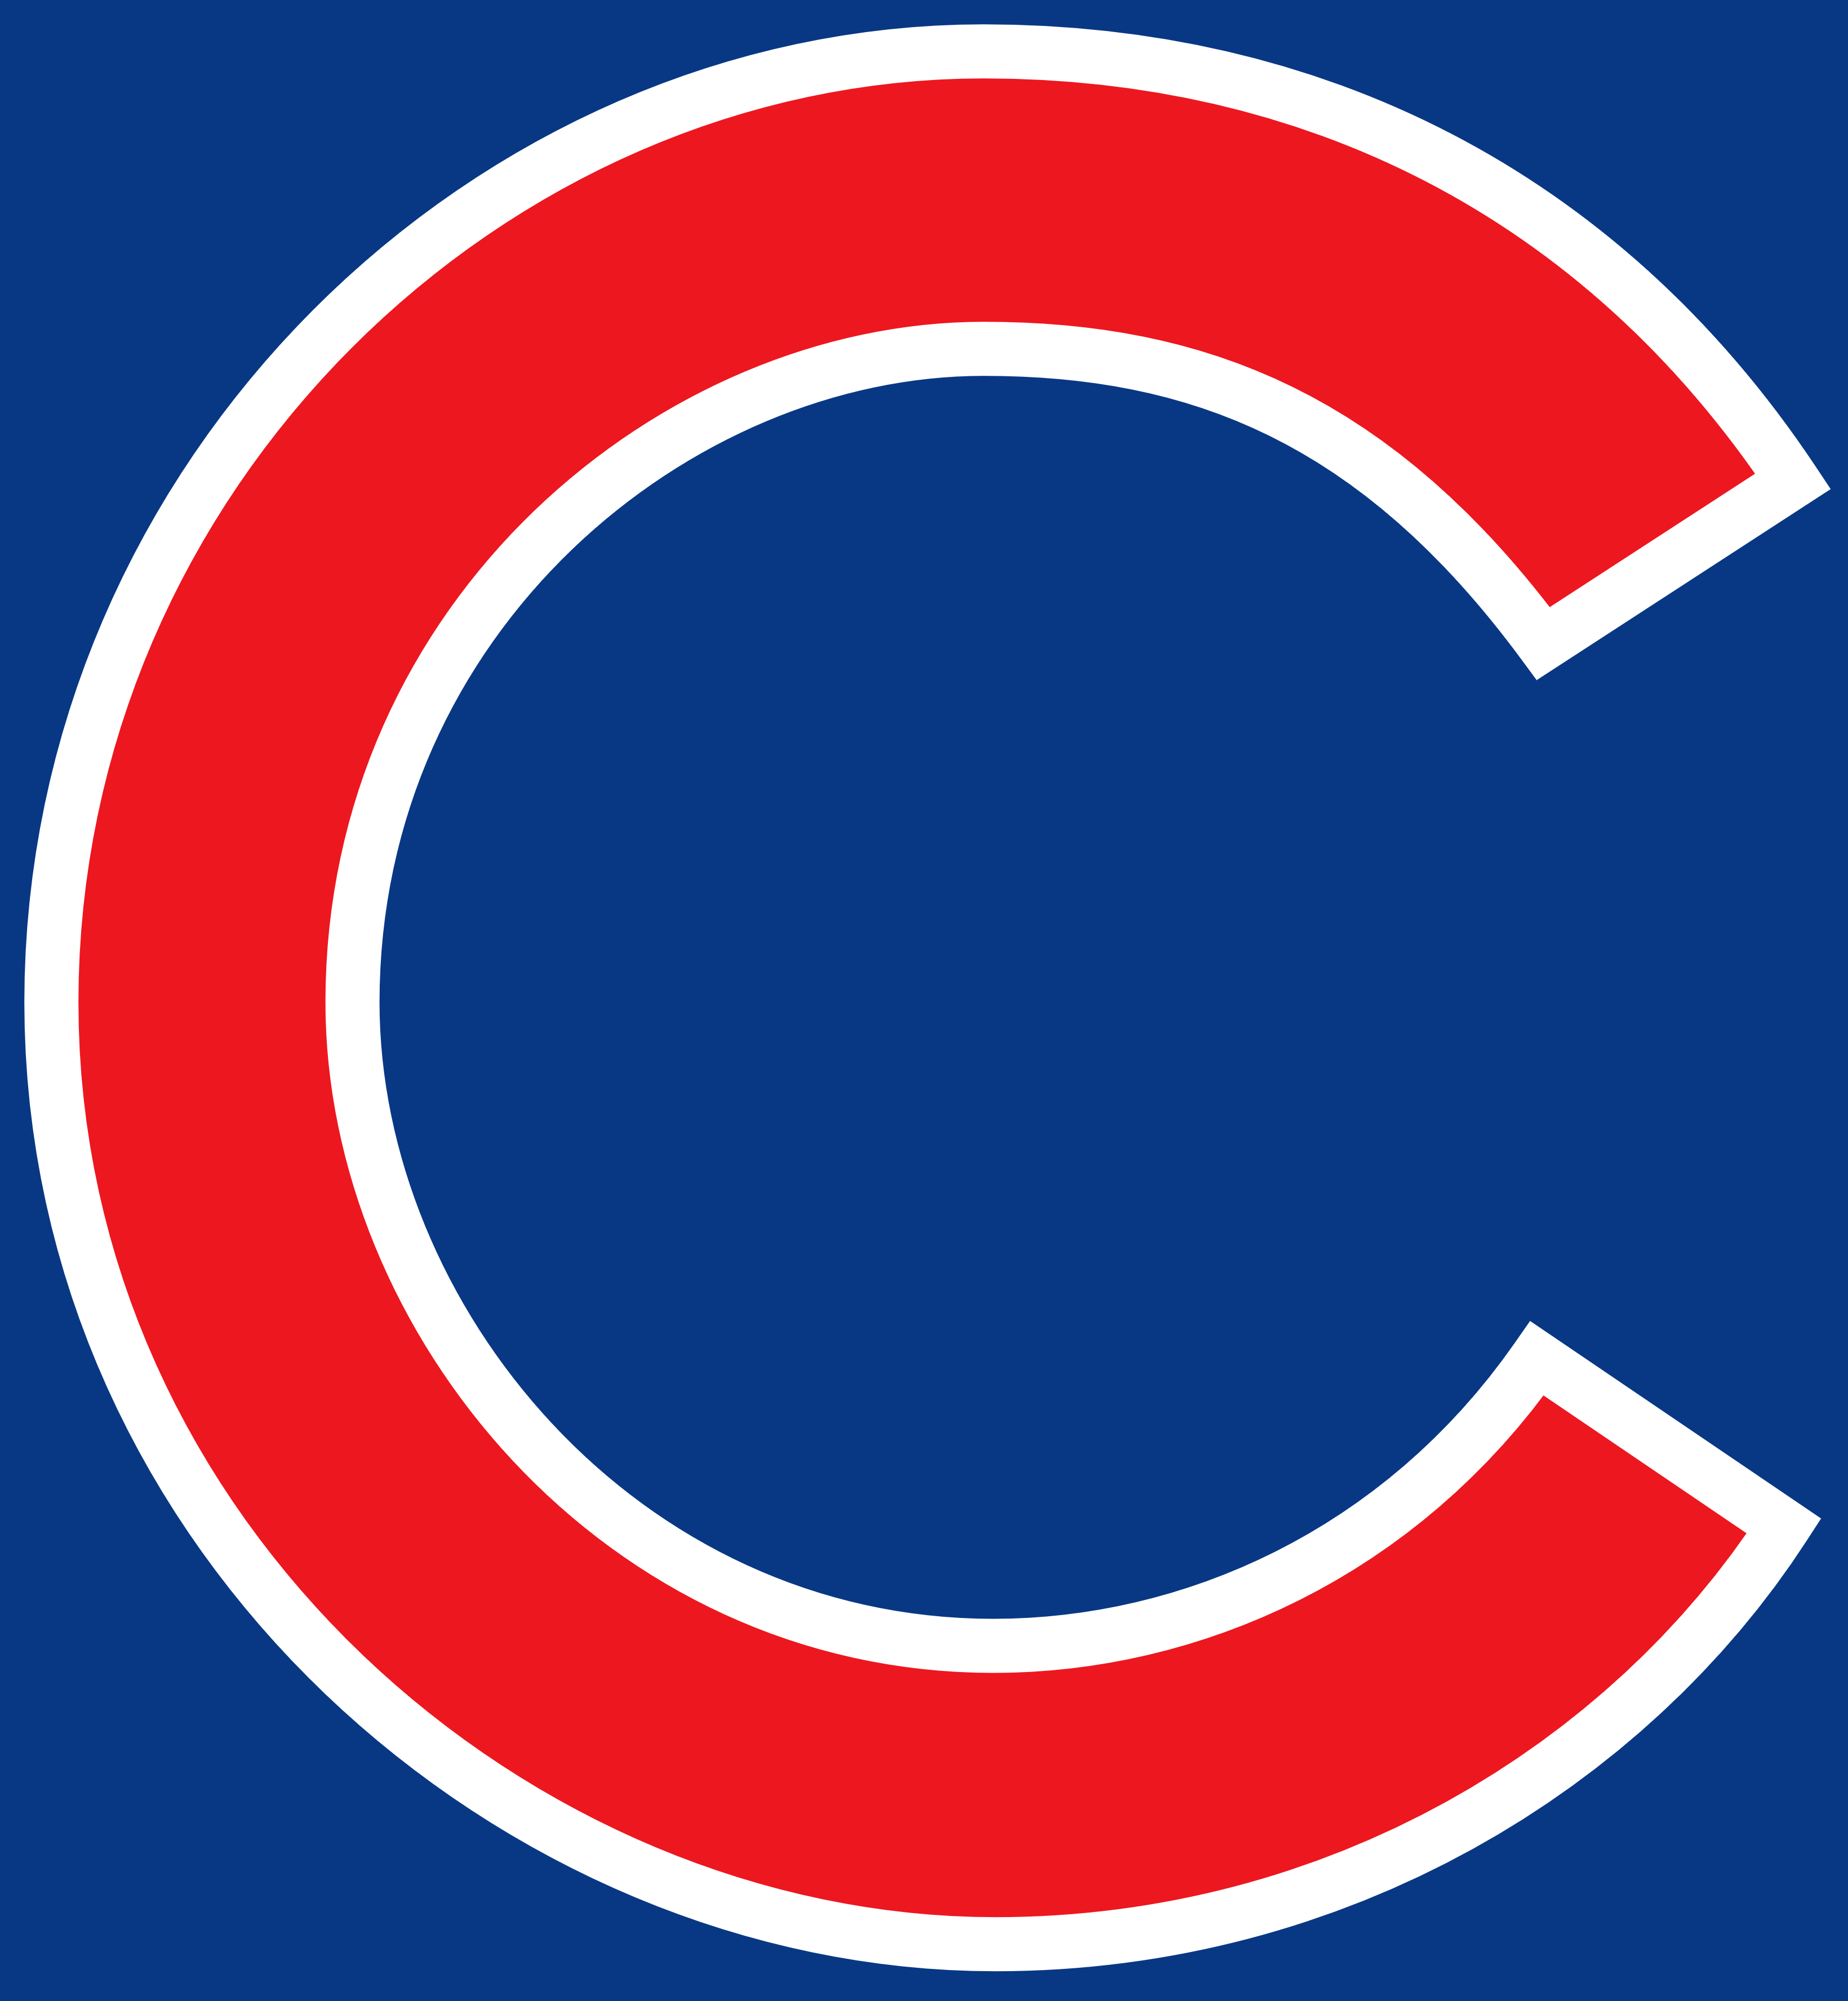 Chicago Cubs Cap Insignia, logo - Chicago Cubs Logo PNG